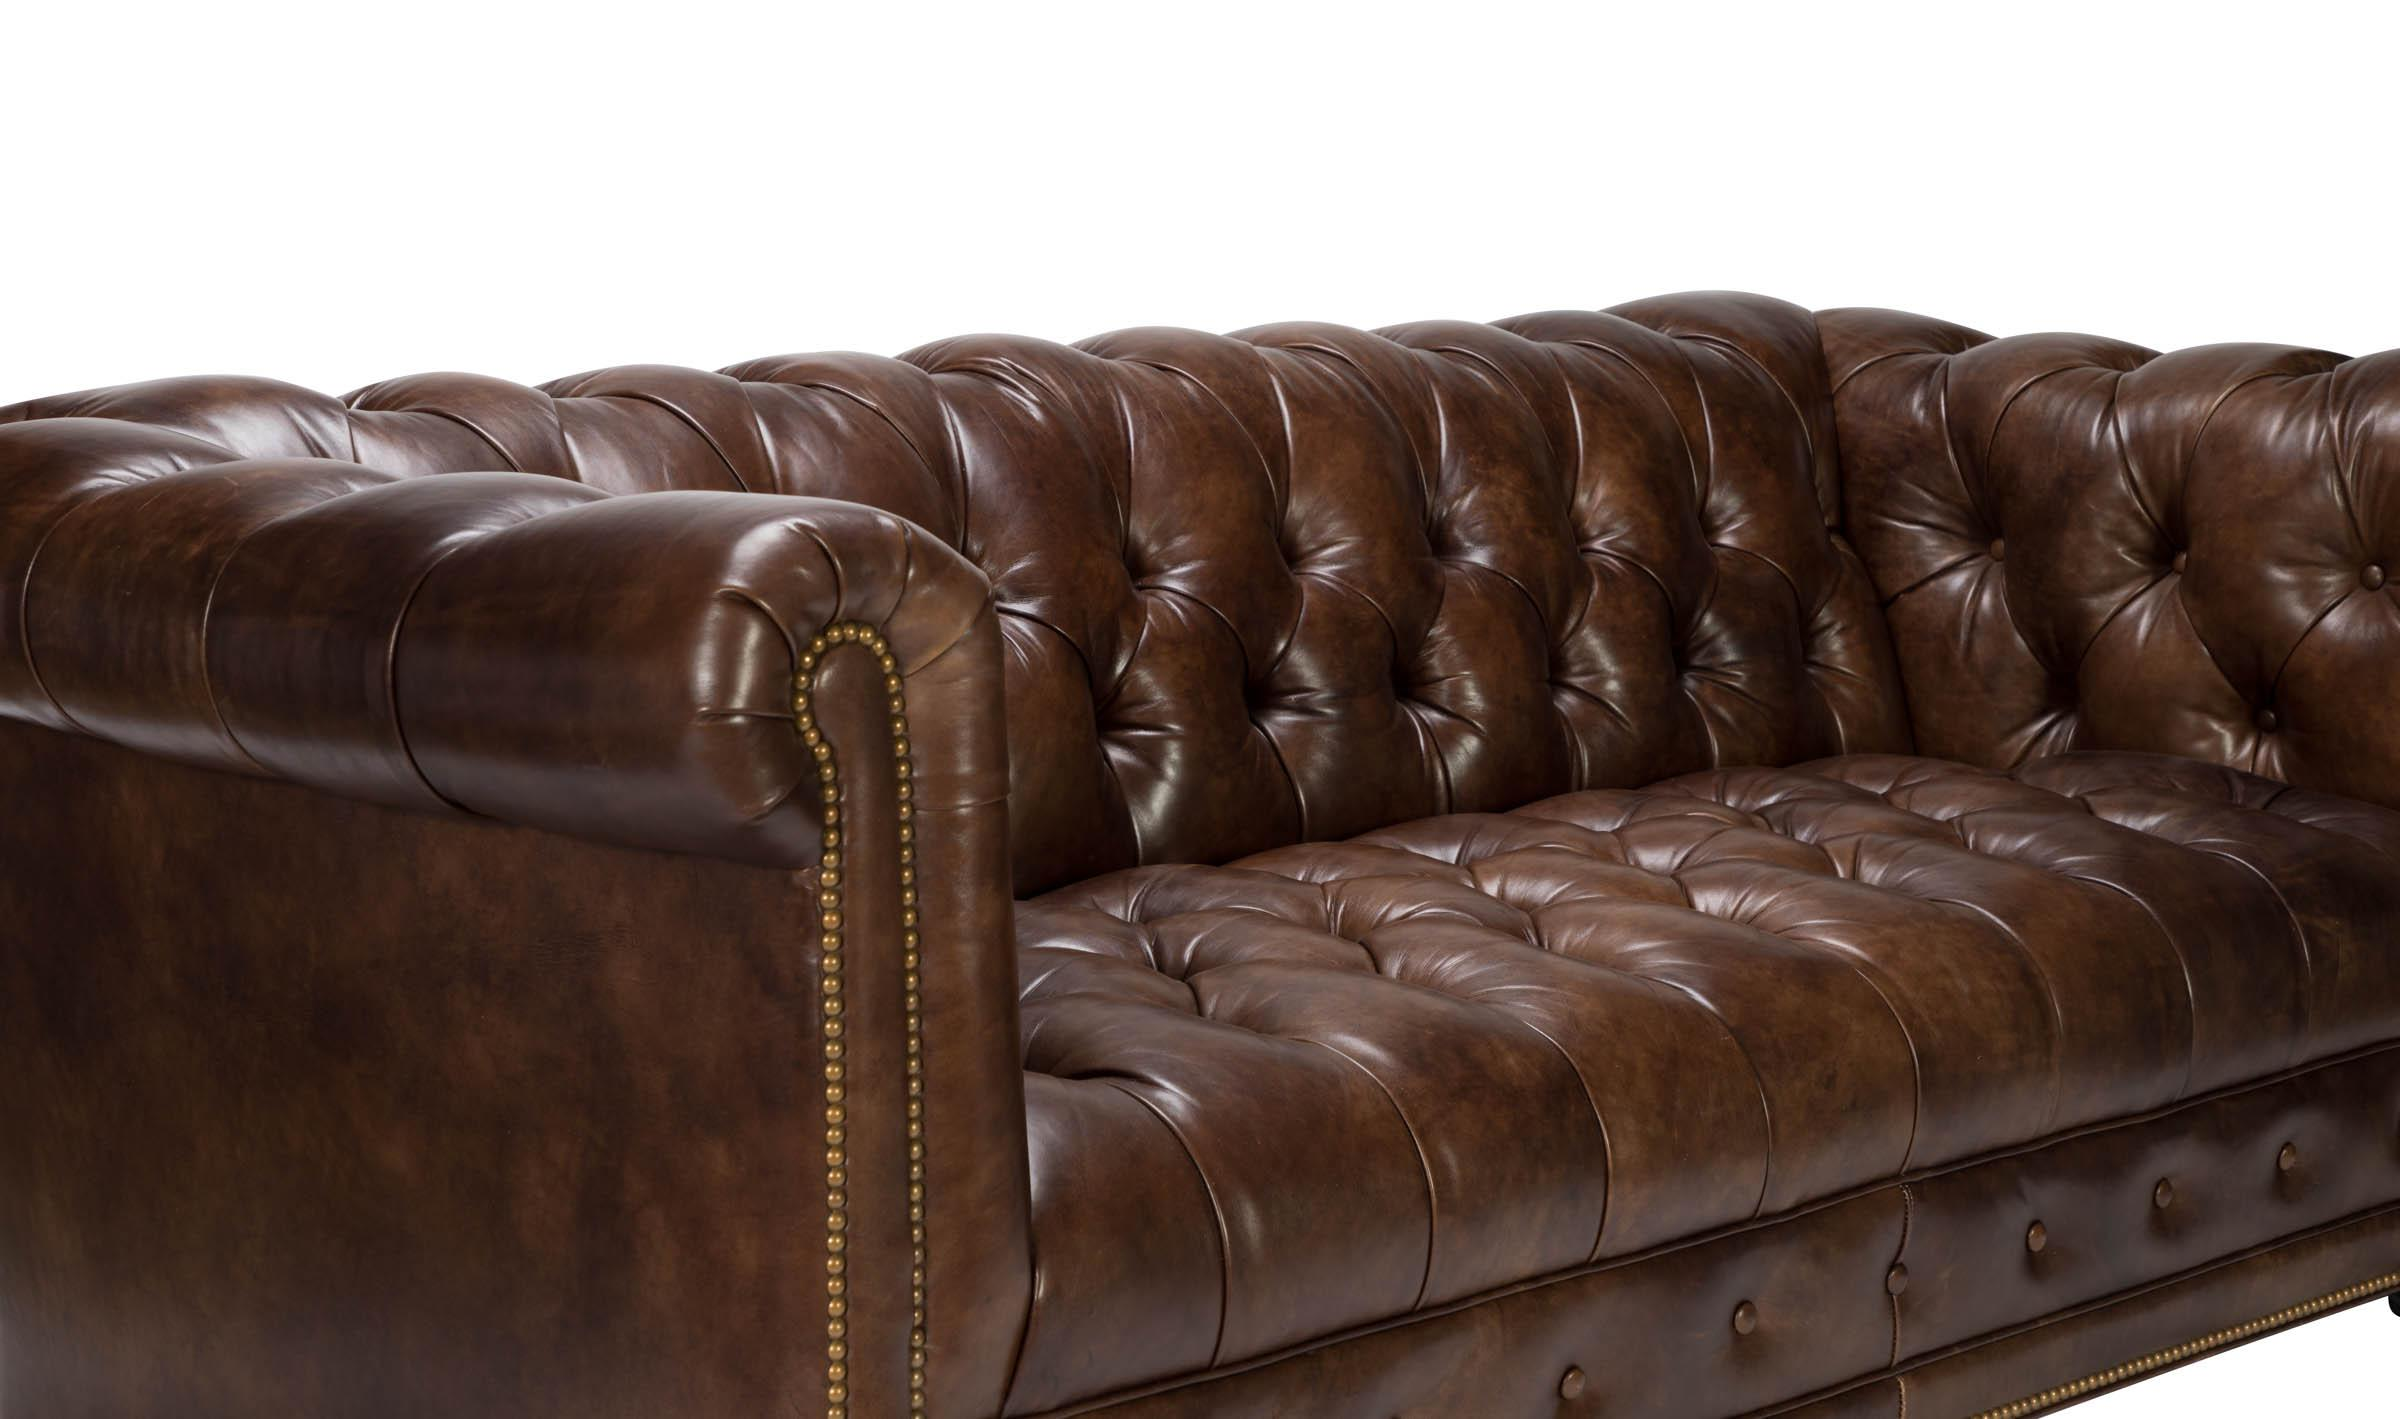 Hancock U0026 Moore Kent Chesterfield Leather Sofa   Image 5 ...